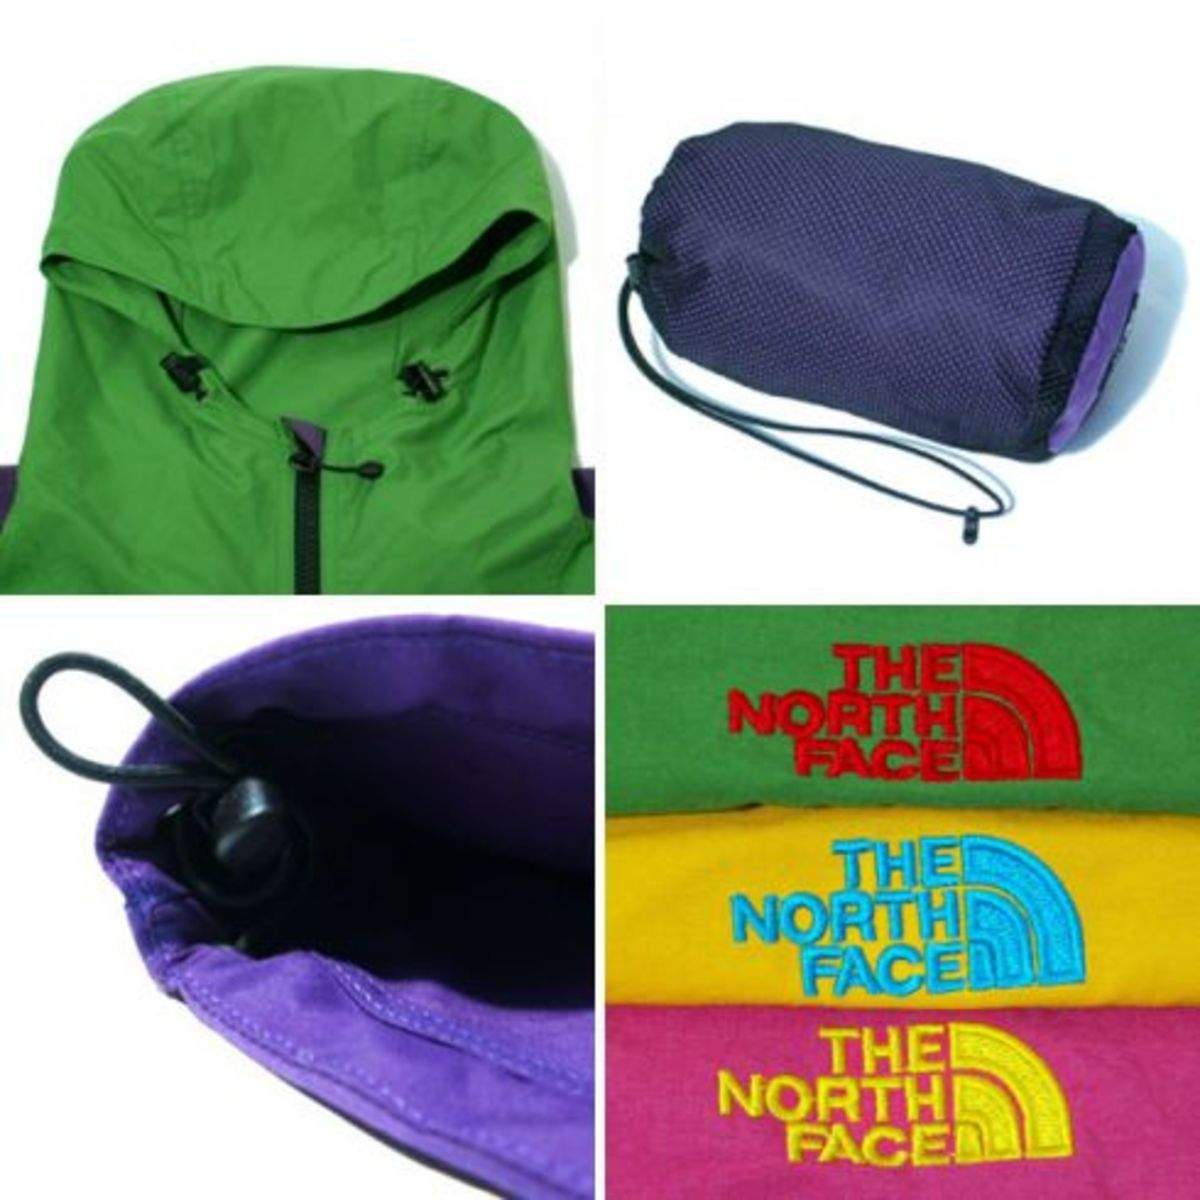 atmos x The North Face - Spring 2008 Collection - 3